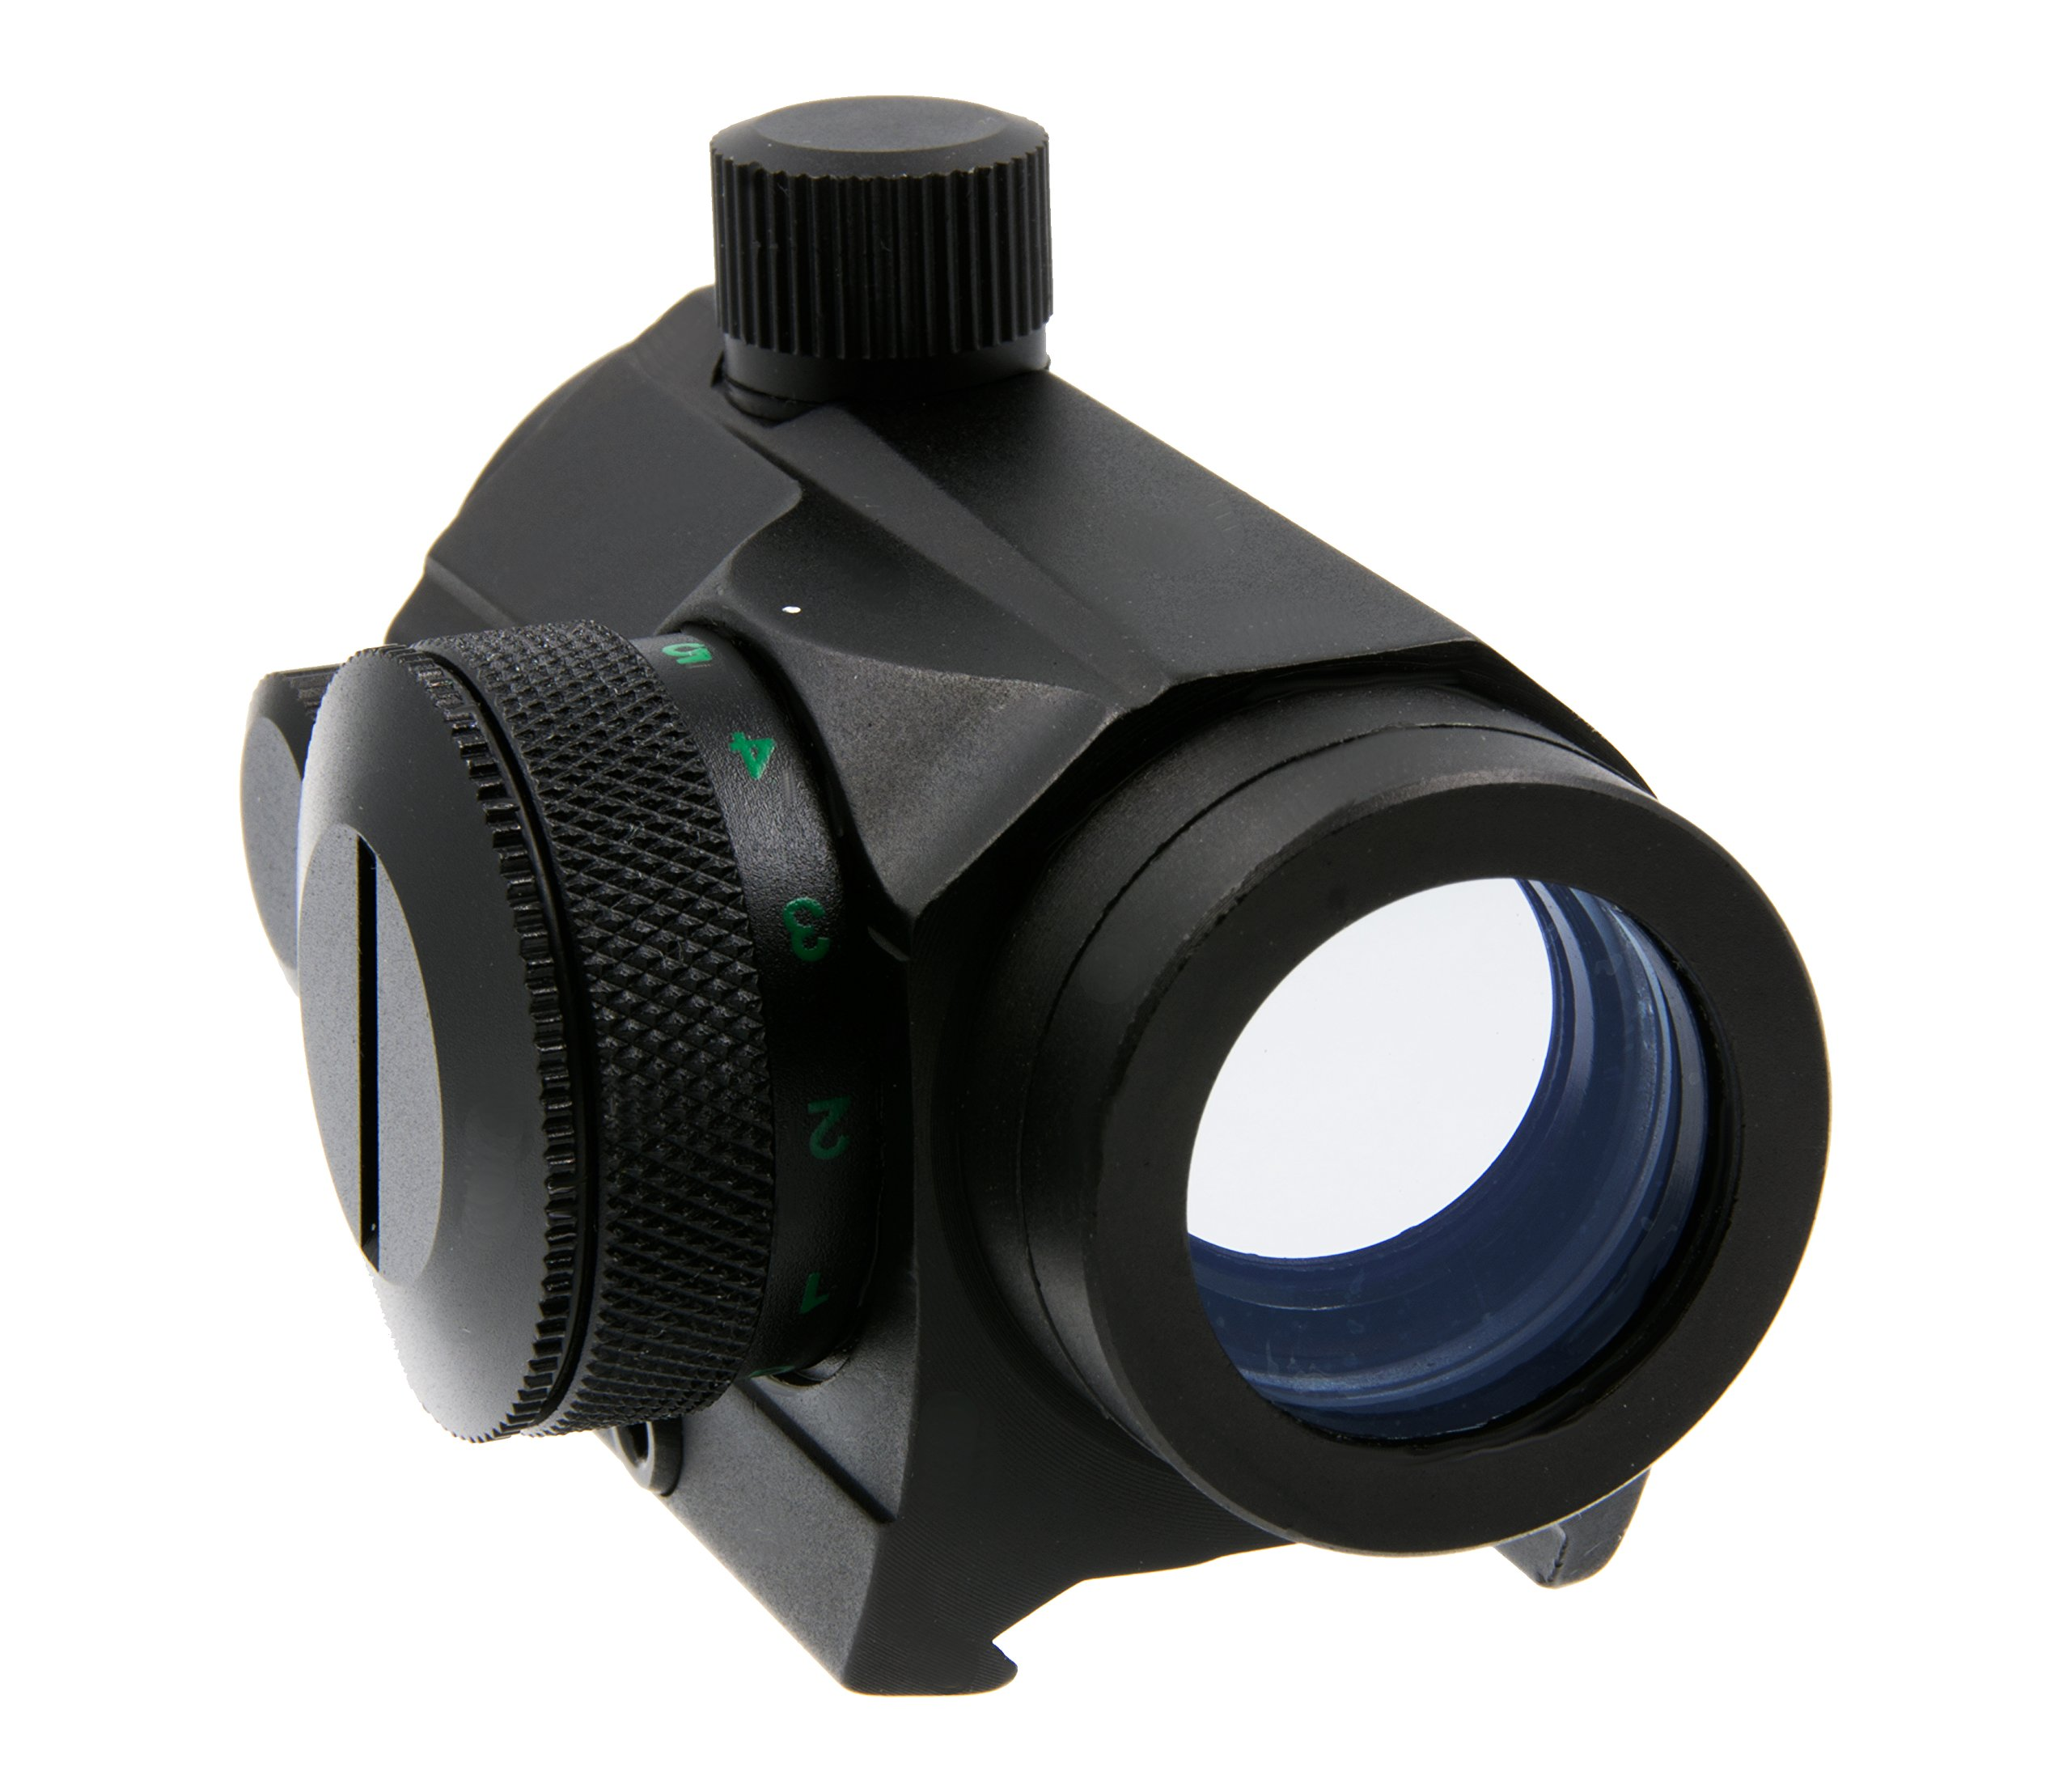 Survival Land Micro Dot Sight - Selectable Red & Green - Red Dot Sight - Green Dot Sight